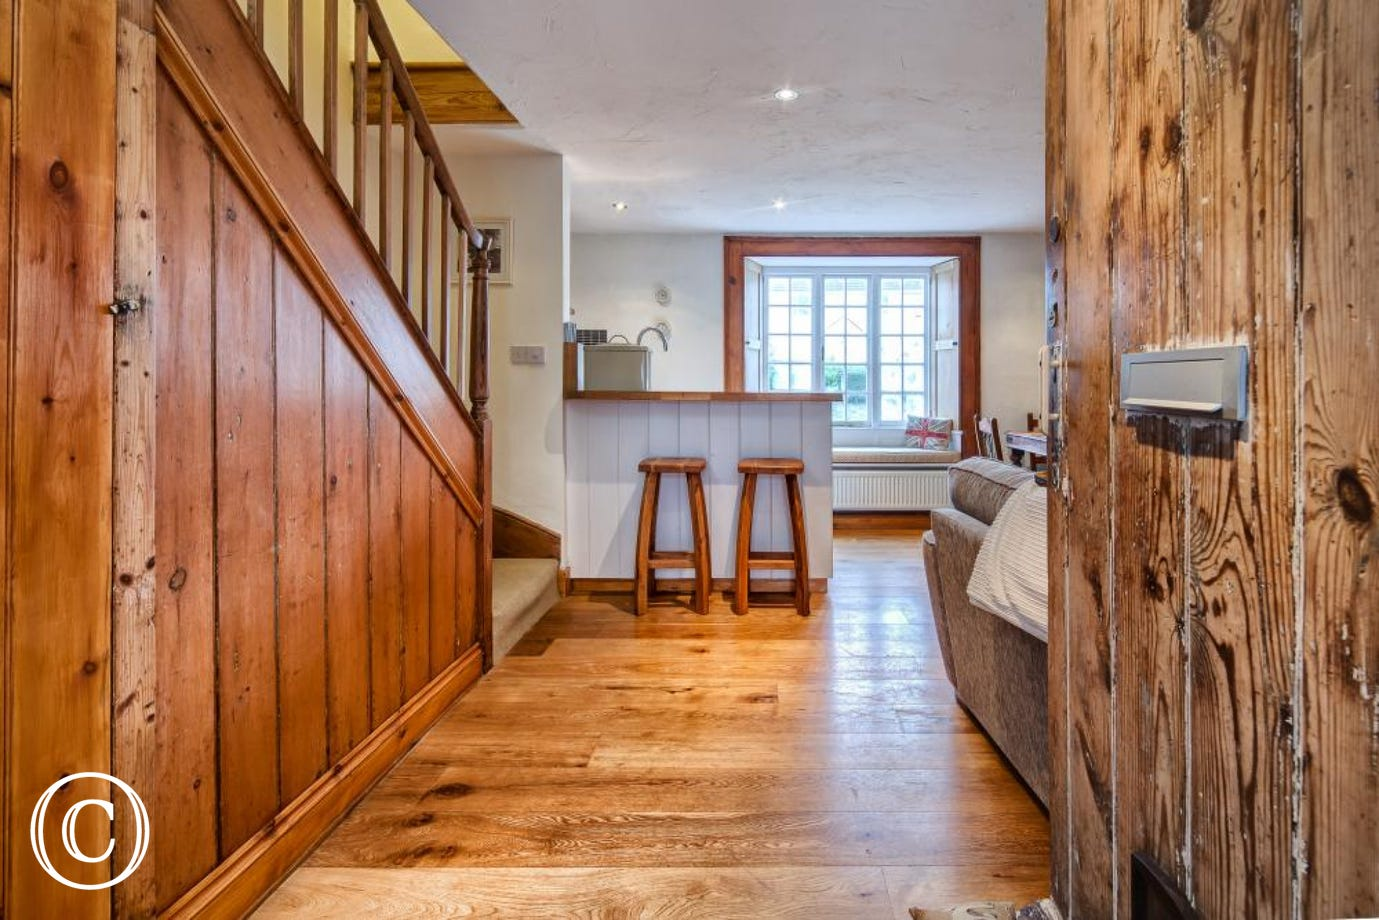 true devon cottage with welcoming wooden door, solid wood floors and bright window in the background